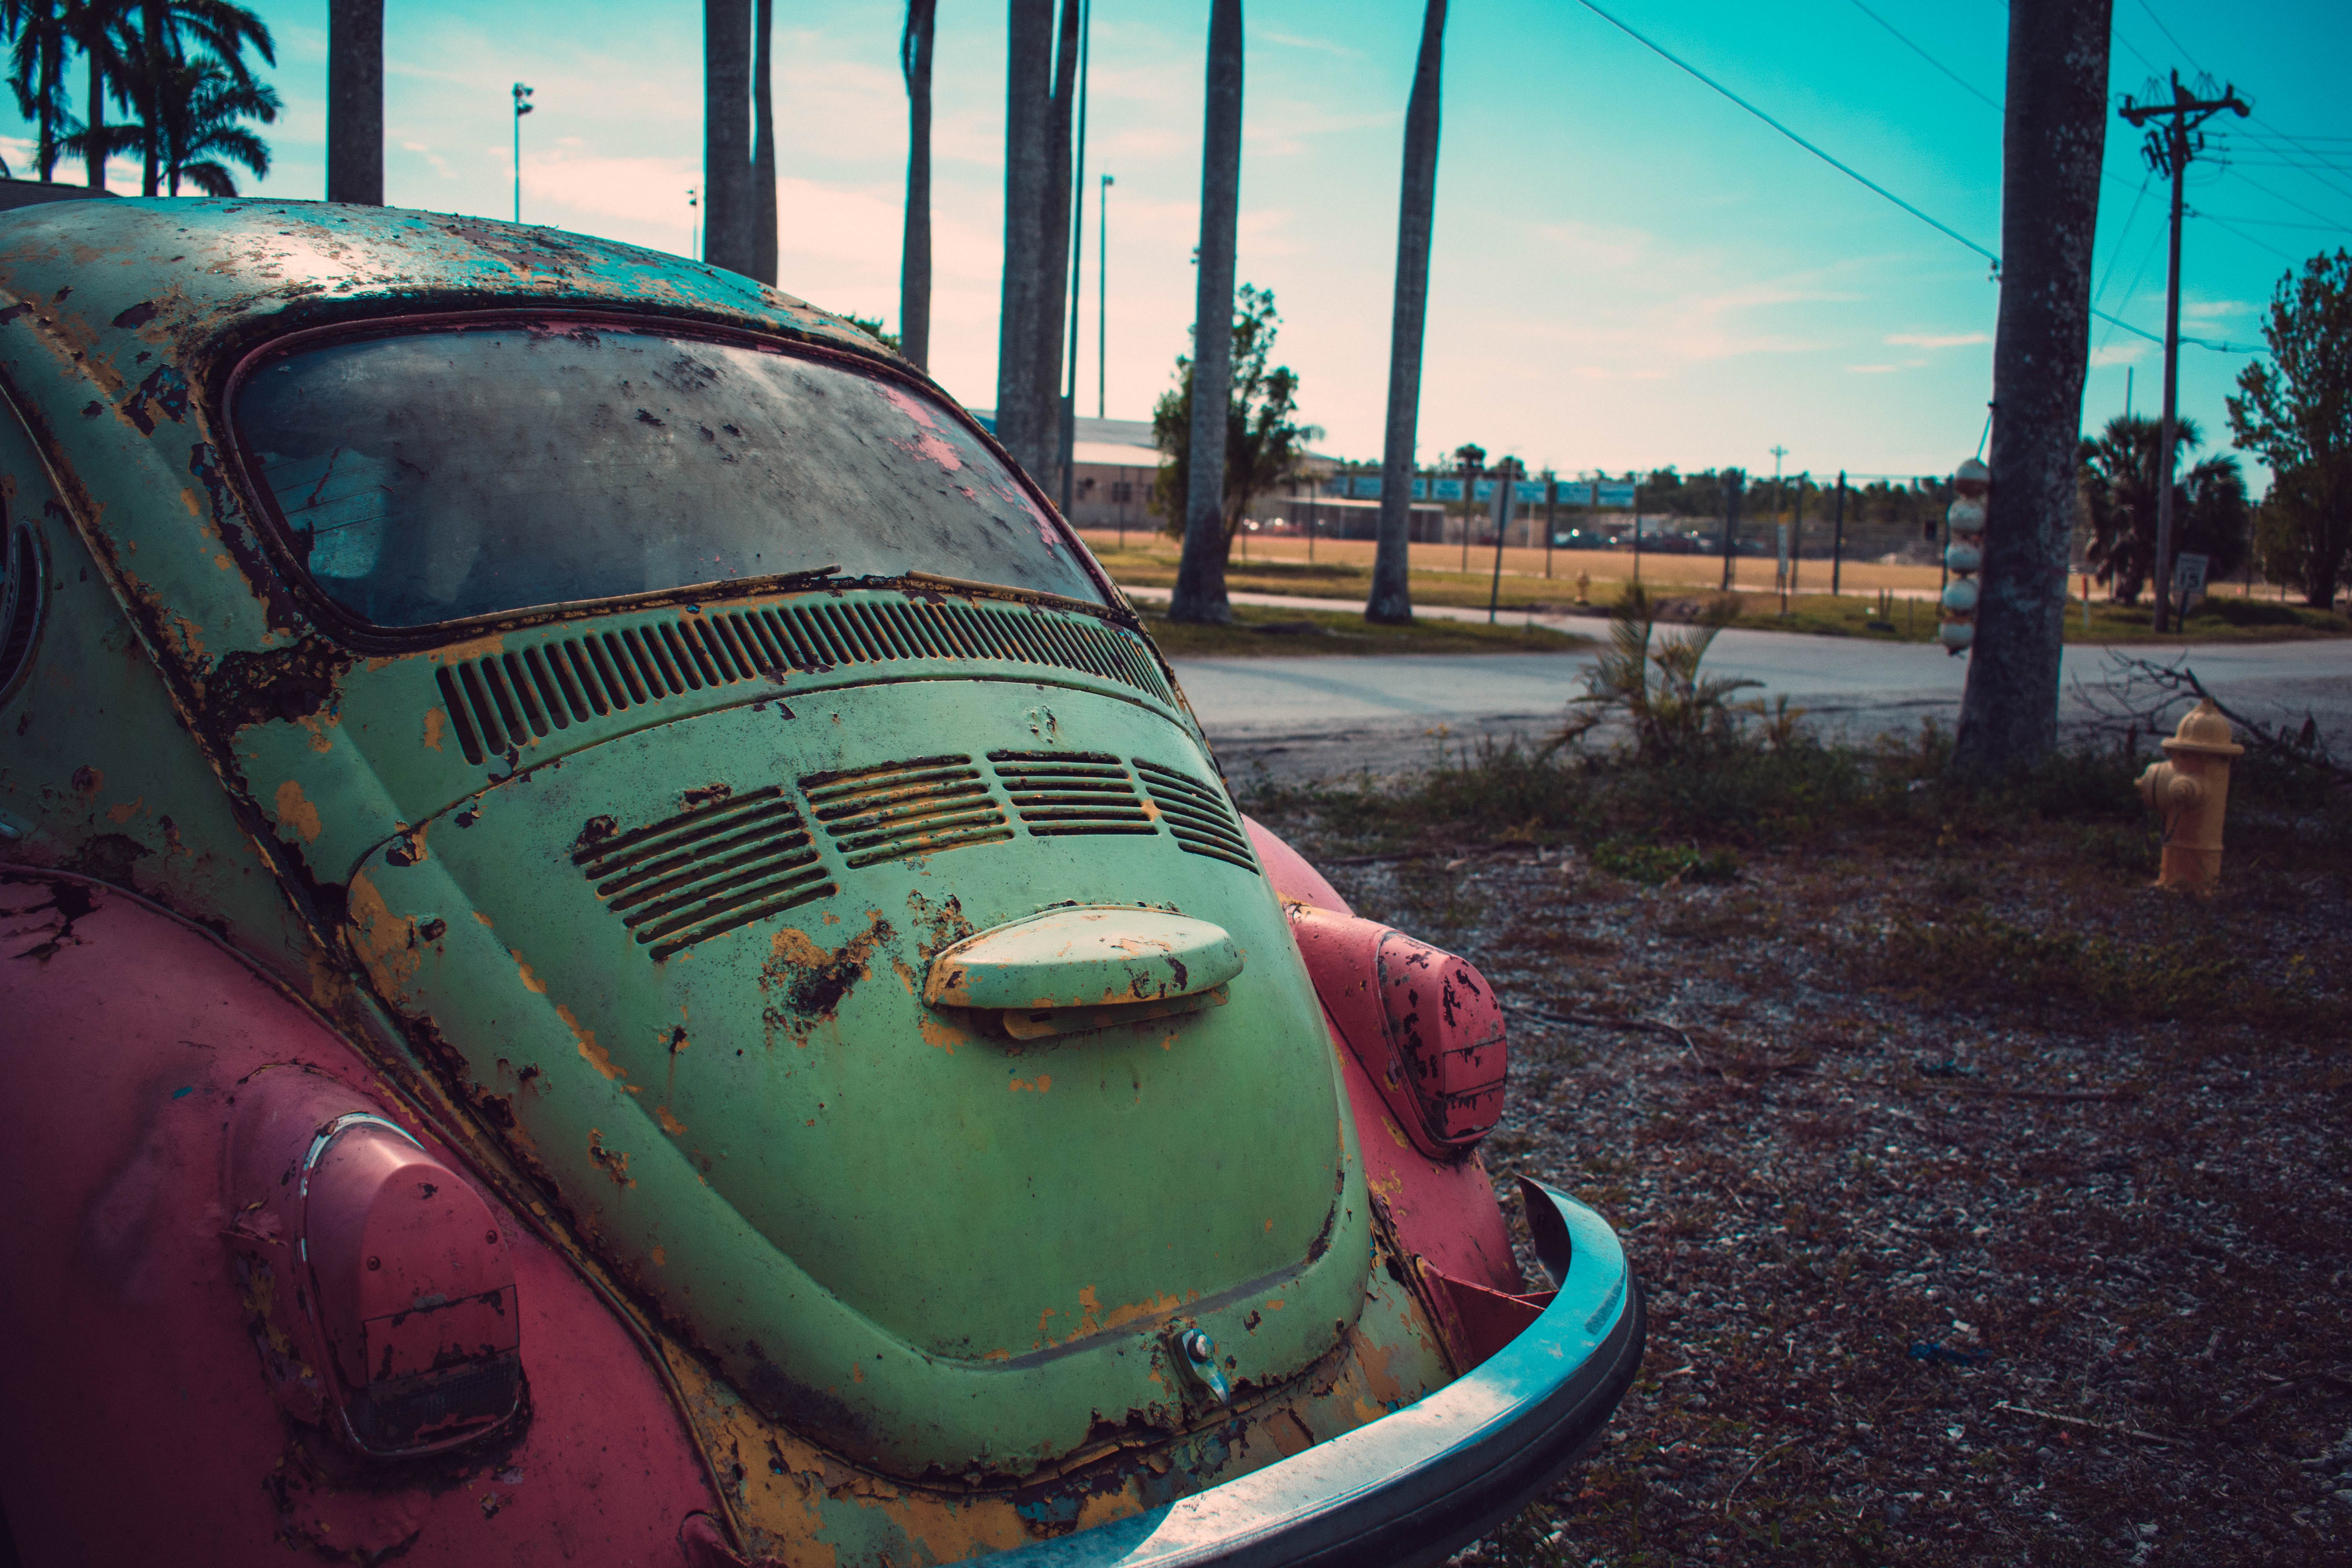 Photography of Green and Pink Volkswagen Beetle Parked Beside The Road